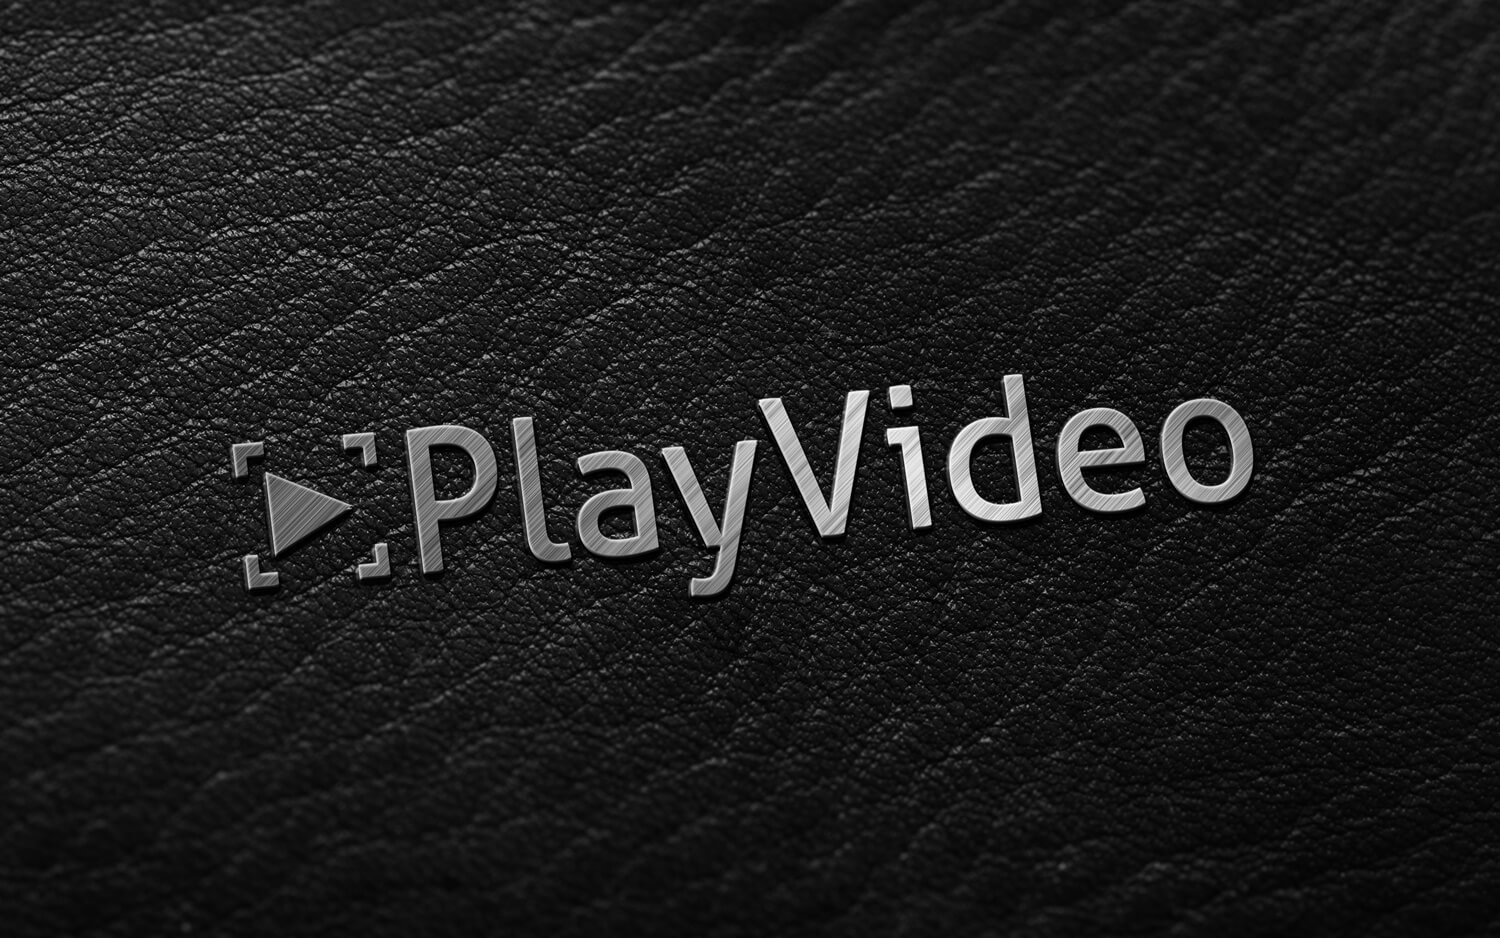 play video playvideo PlayVideo | Design Gráfico play video